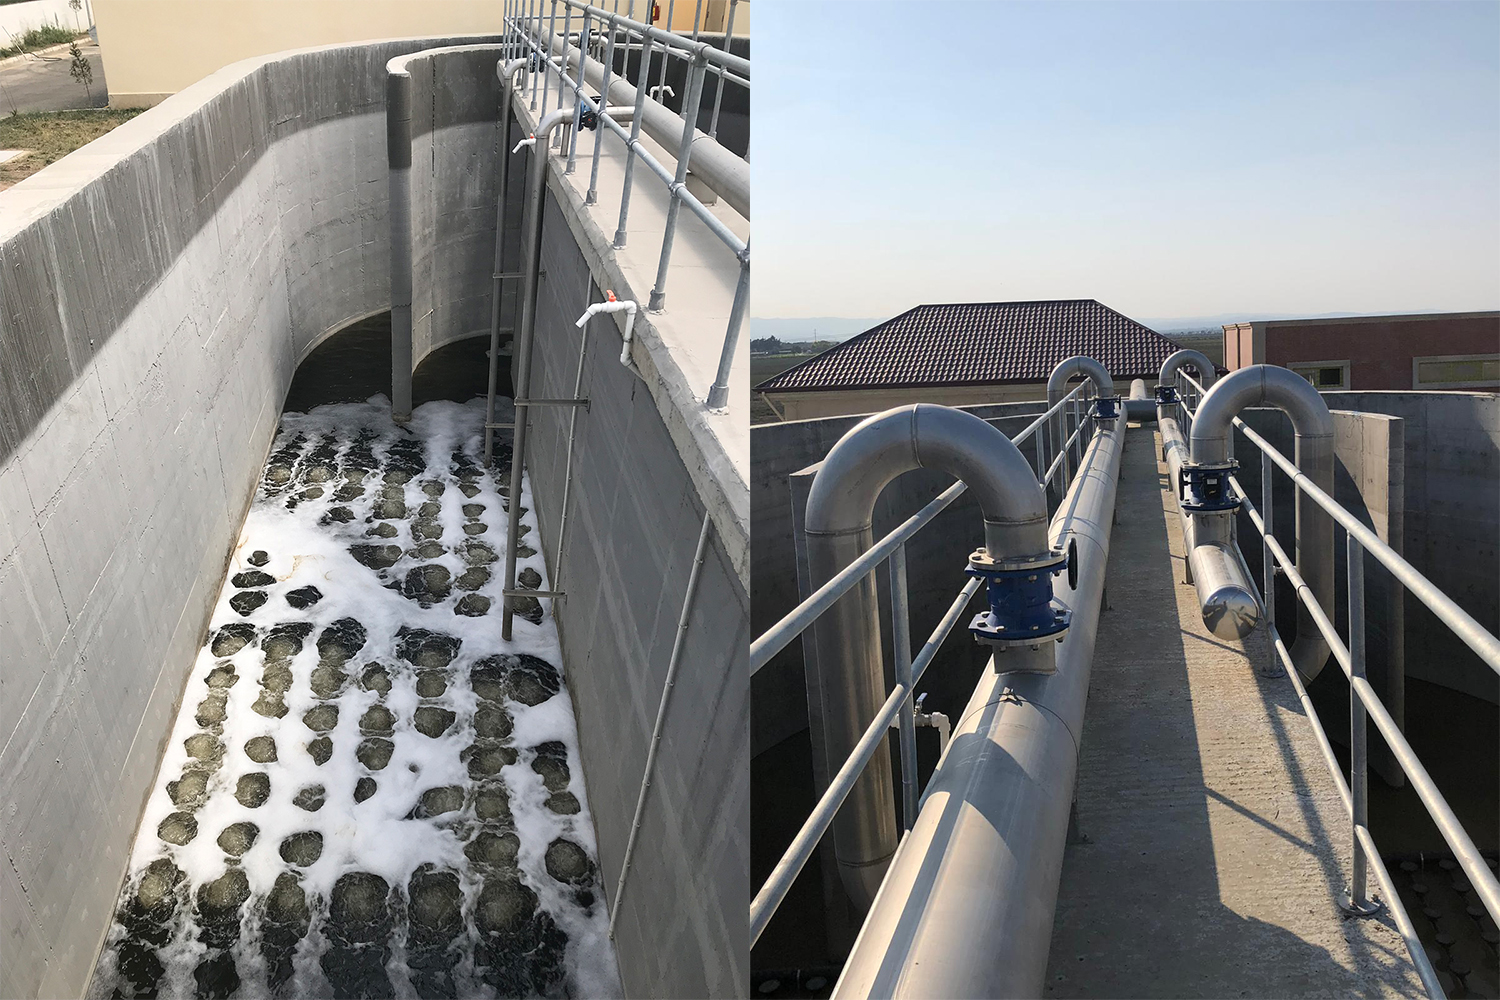 JALILABAD WASTEWATER TREATMENT PLANT